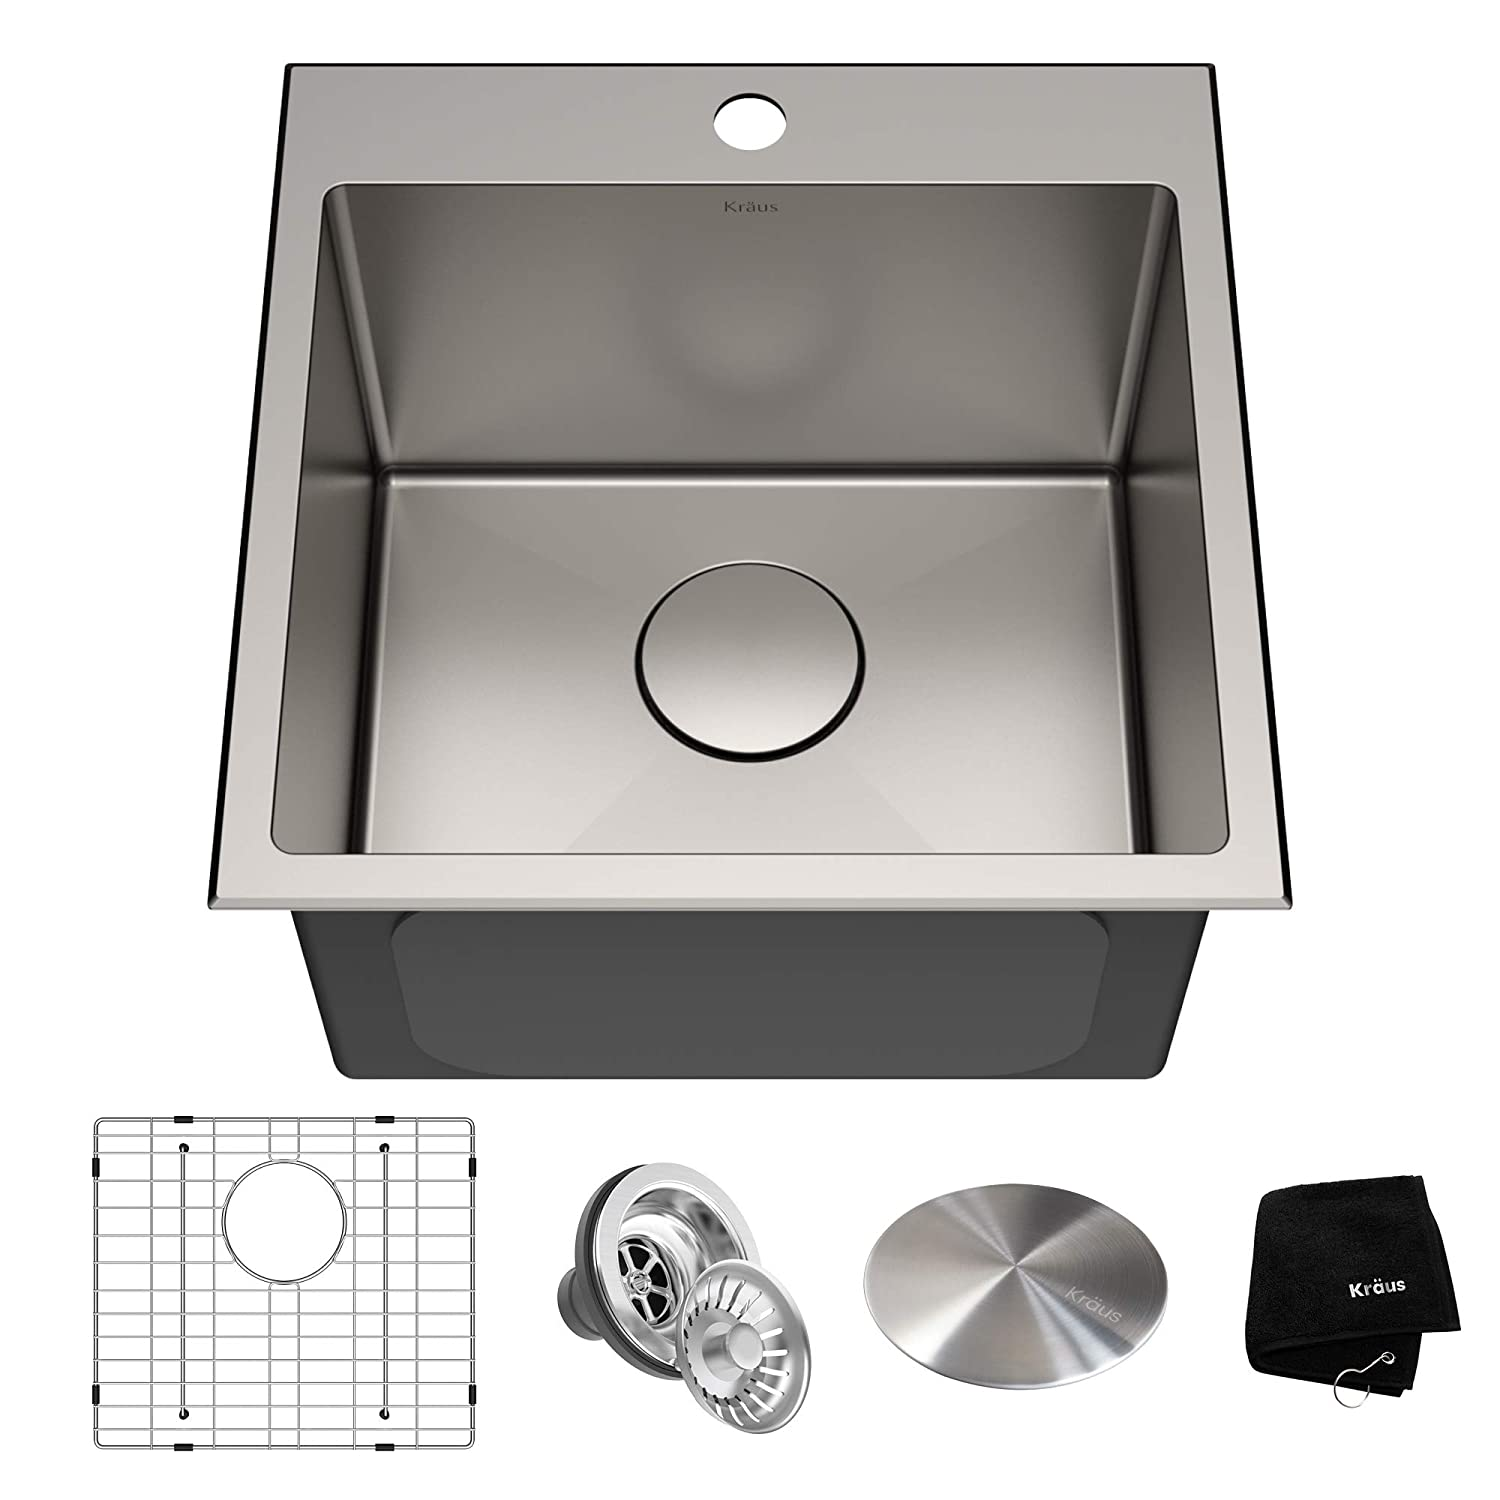 Kraus kht301 18 standart pro kitchen stainless steel sink 18 inch 18 inch amazon com